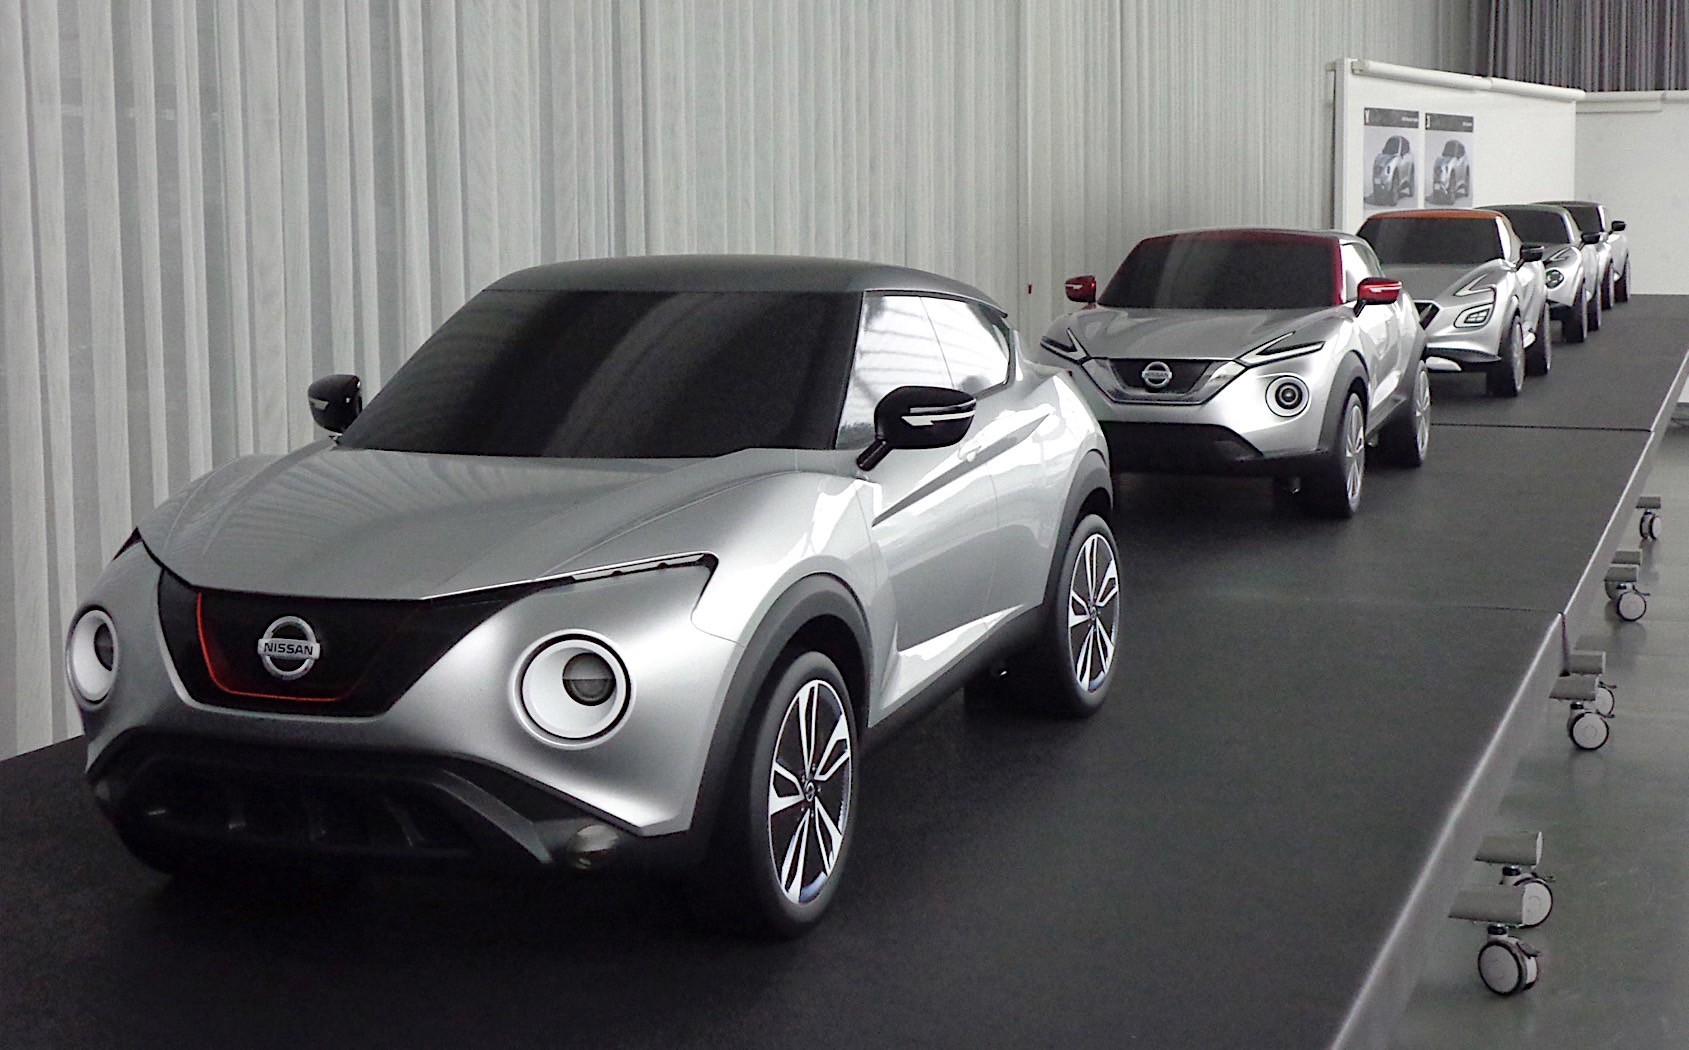 Nissan Juke 2020 Interior Albumccars Cars Images Collection